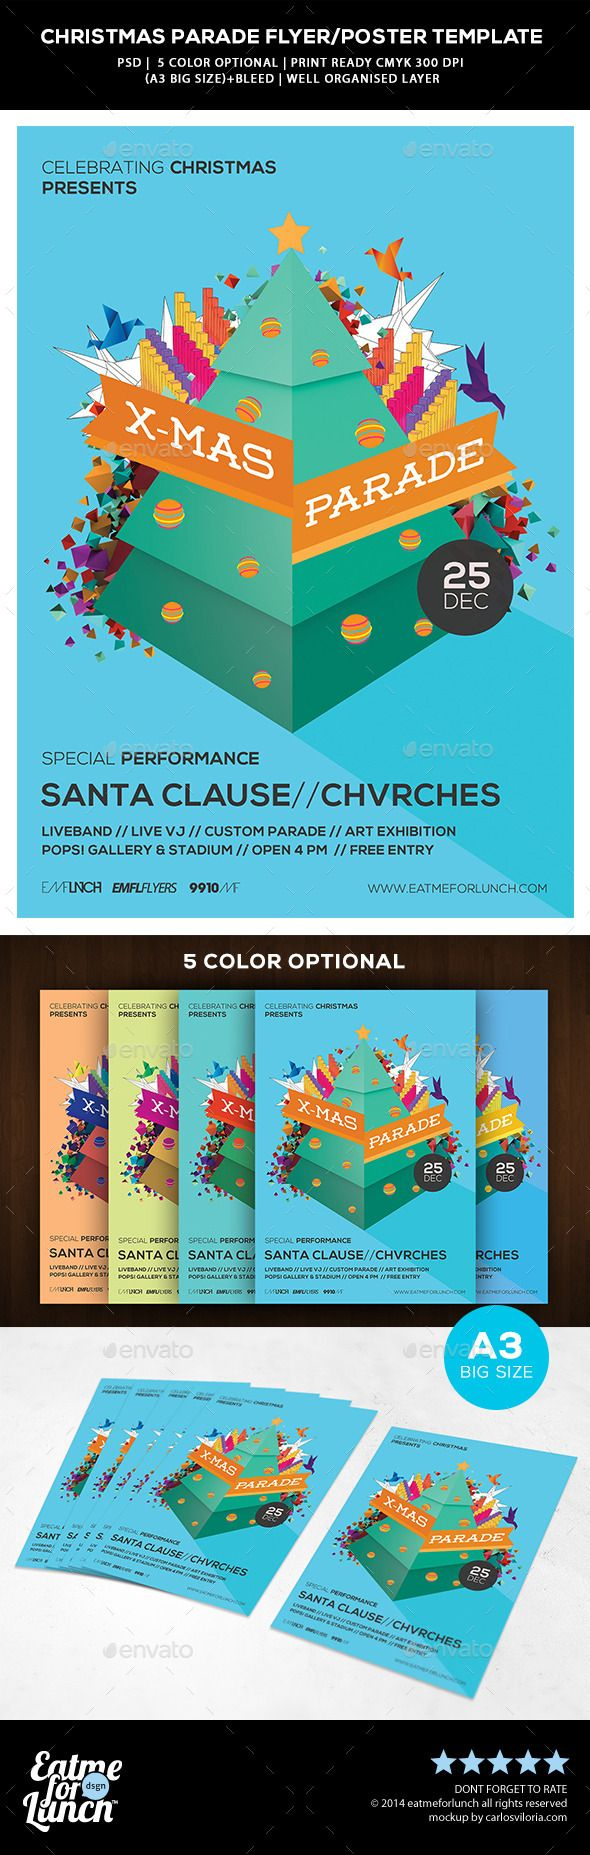 christmas parade flyer template by eatmeforlunch psd file a3 big